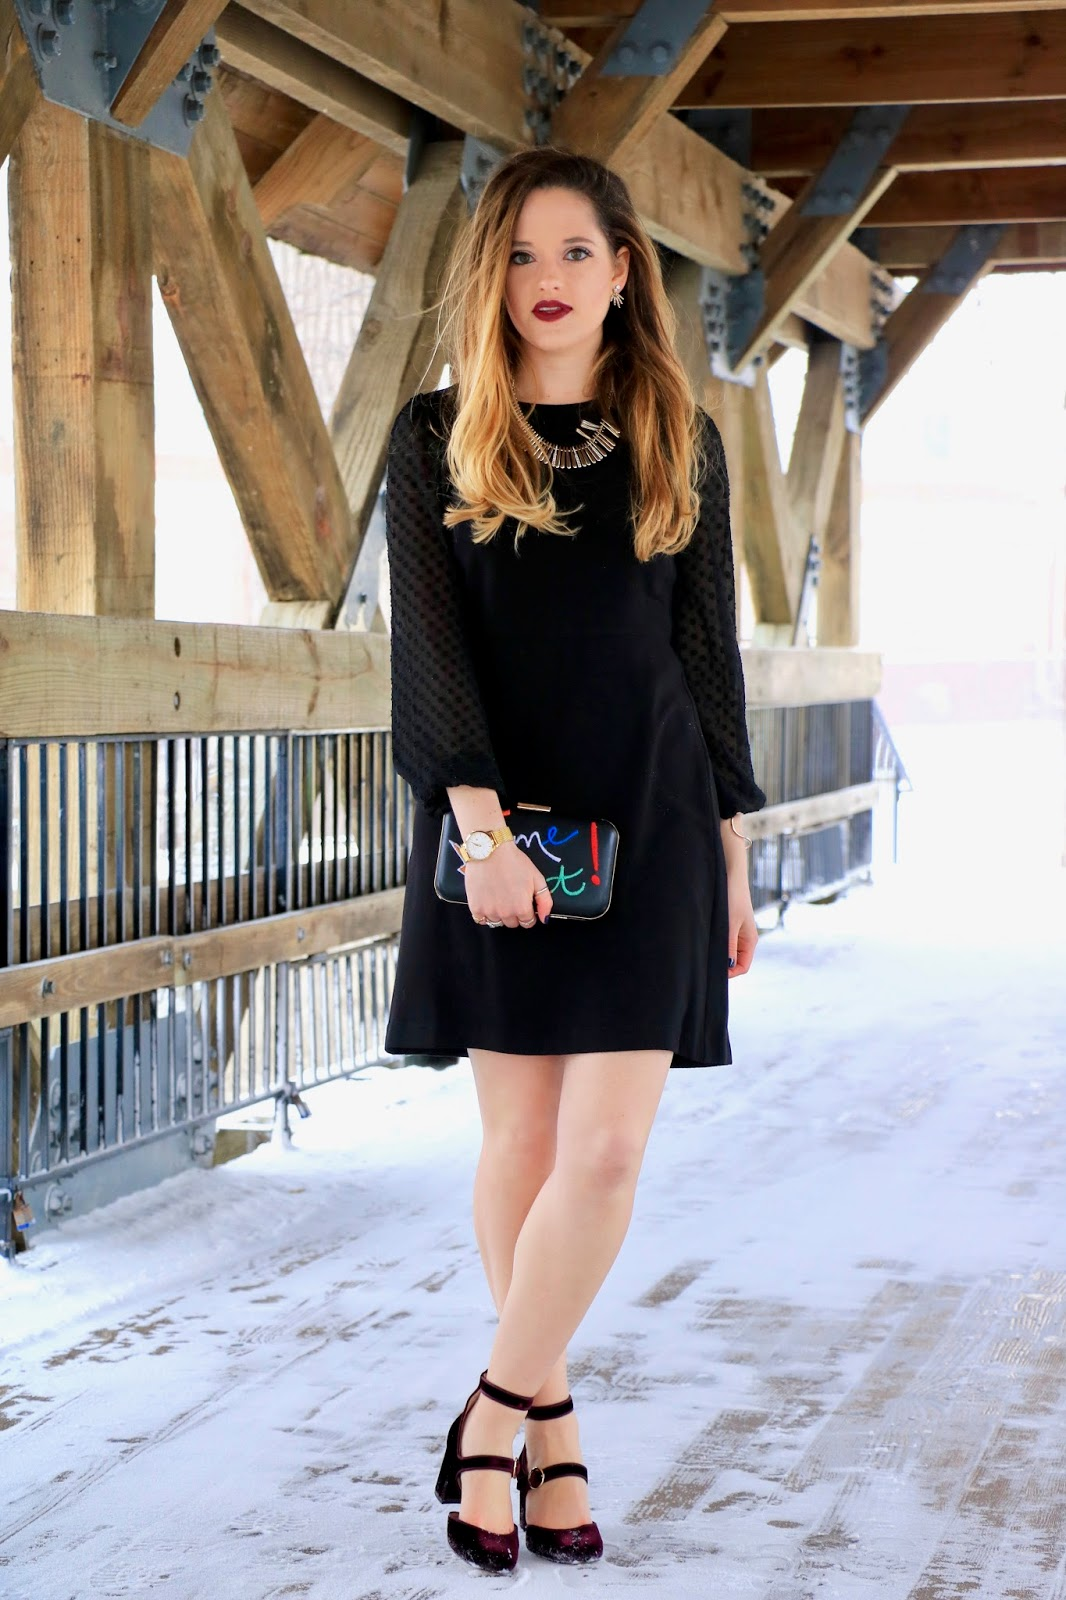 Nyc fashion blogger Kathleen Harper wearing a winter black dress LBD